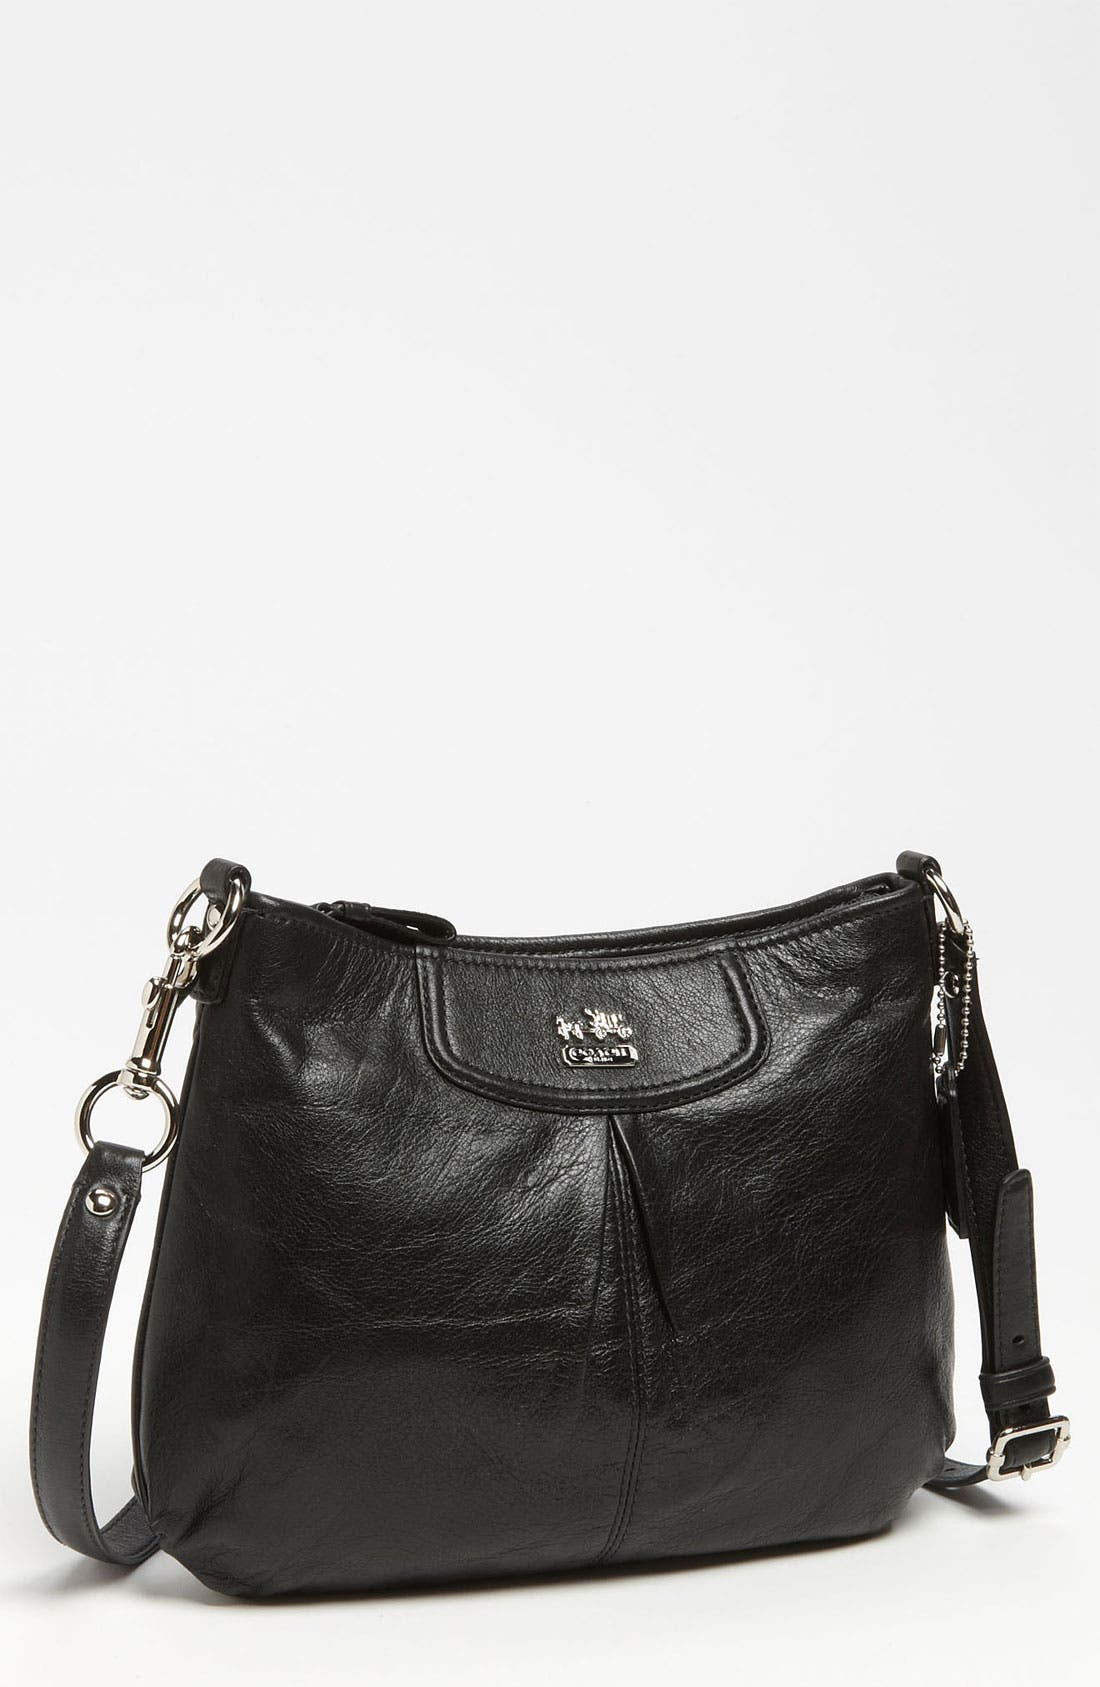 Alternate Image 1 Selected - COACH 'Madison - Swingpack' Leather Crossbody Bag